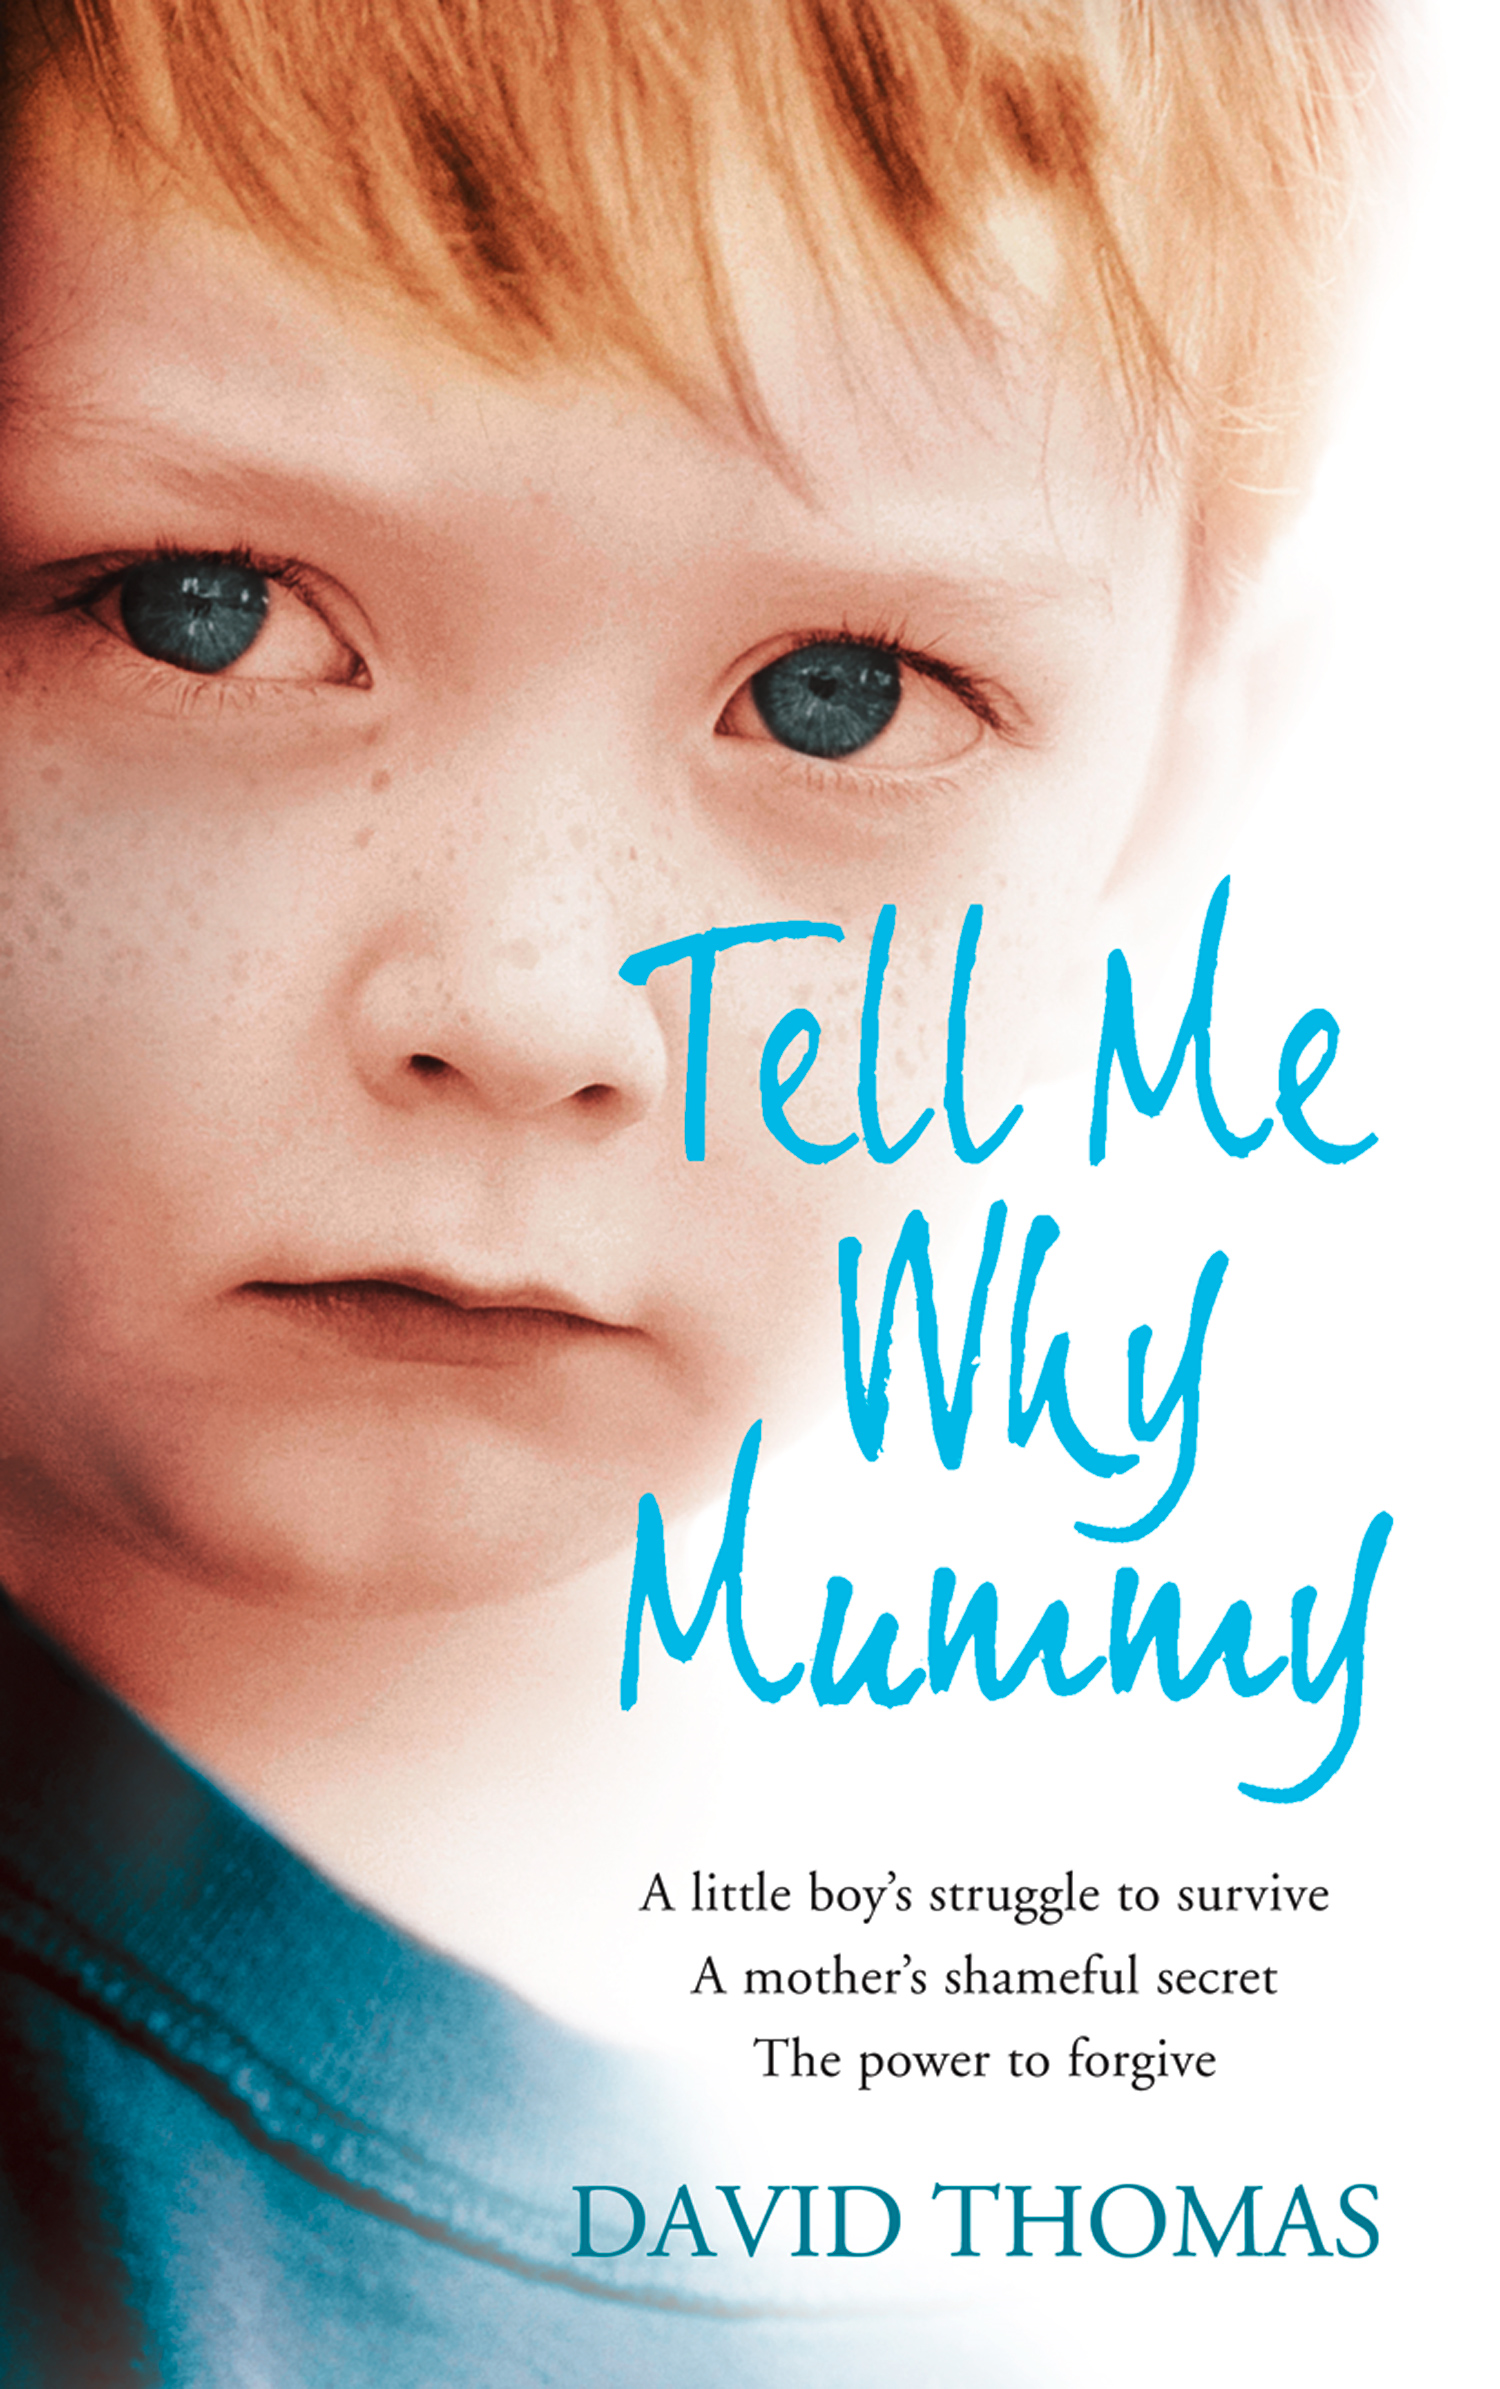 Tell Me Why,  Mummy: A Little Boy?s Struggle to Survive. A Mother?s Shameful Secret. The Power to Forgive.